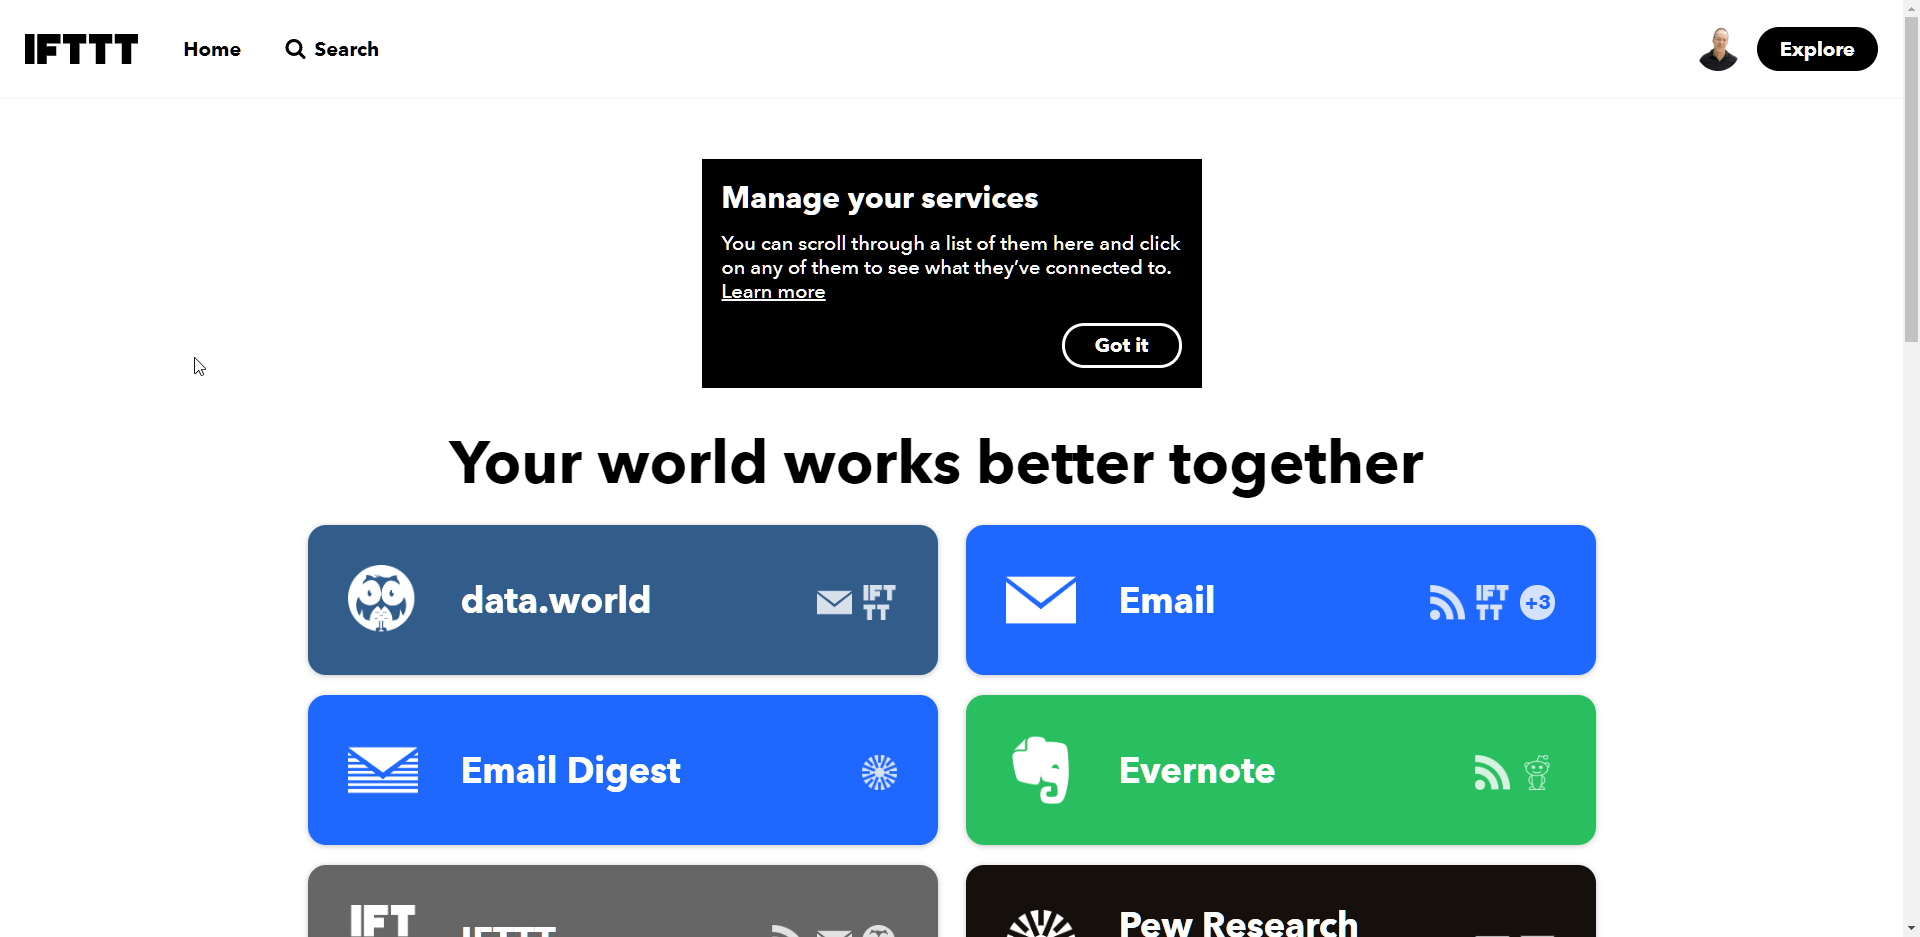 IFTTT - If This Then That